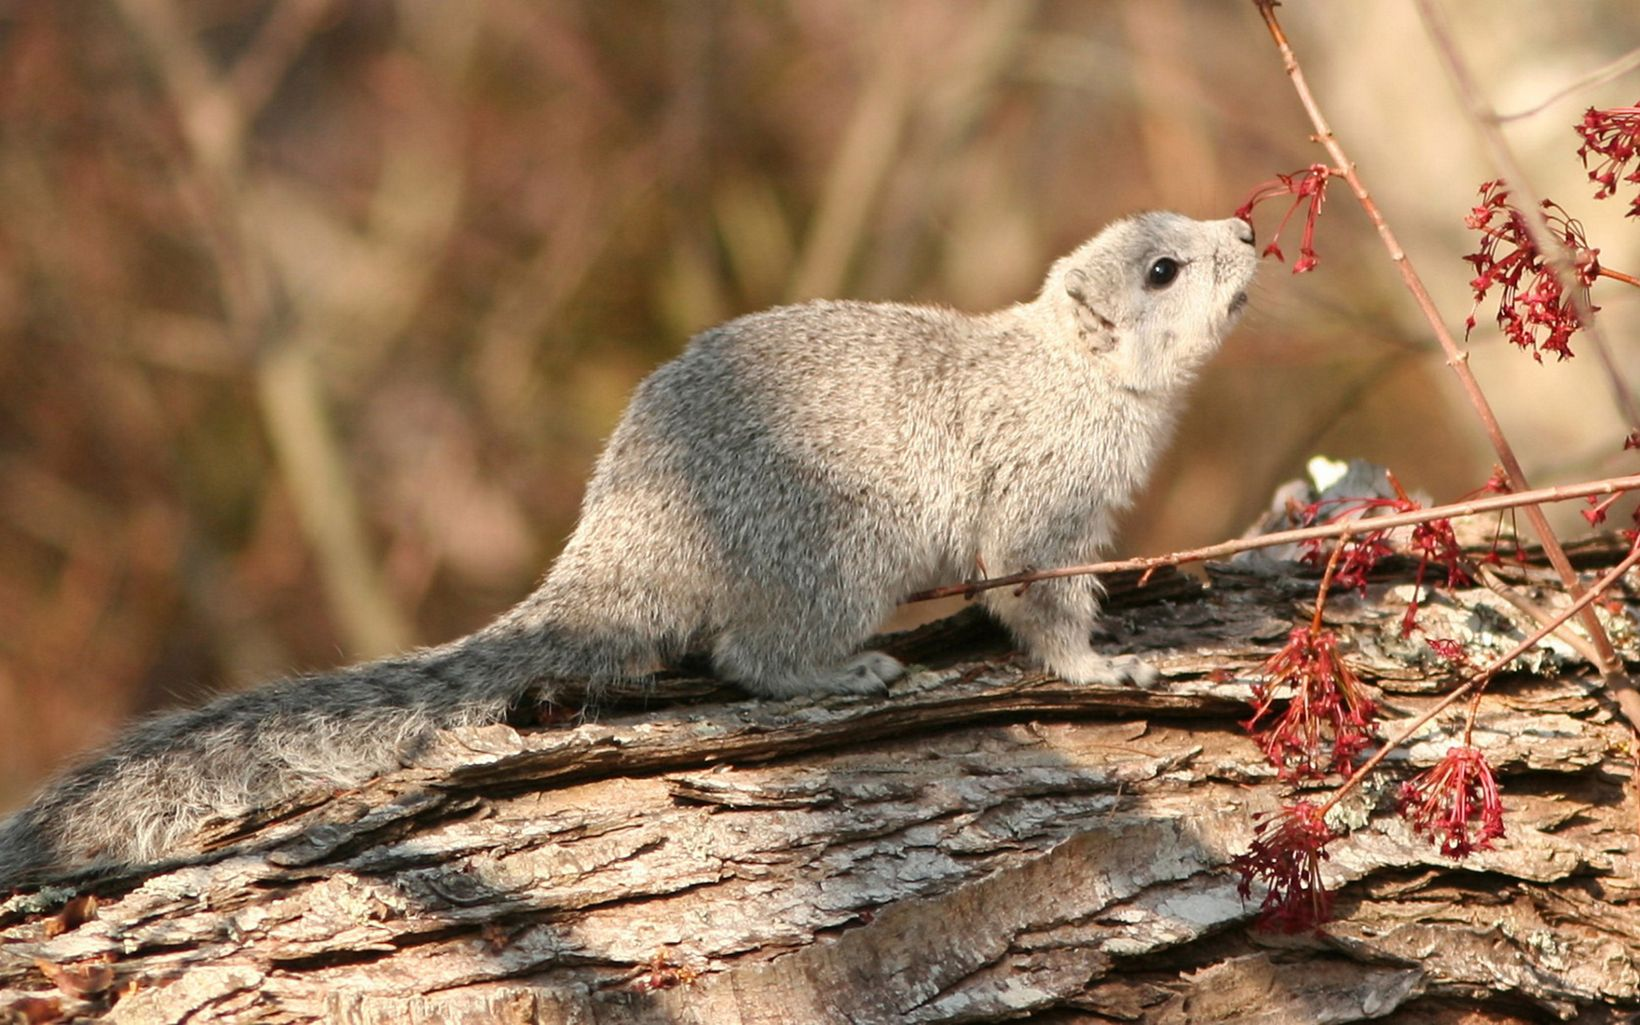 The Delmarva fox squirrel conservation effort has been an increasing success.